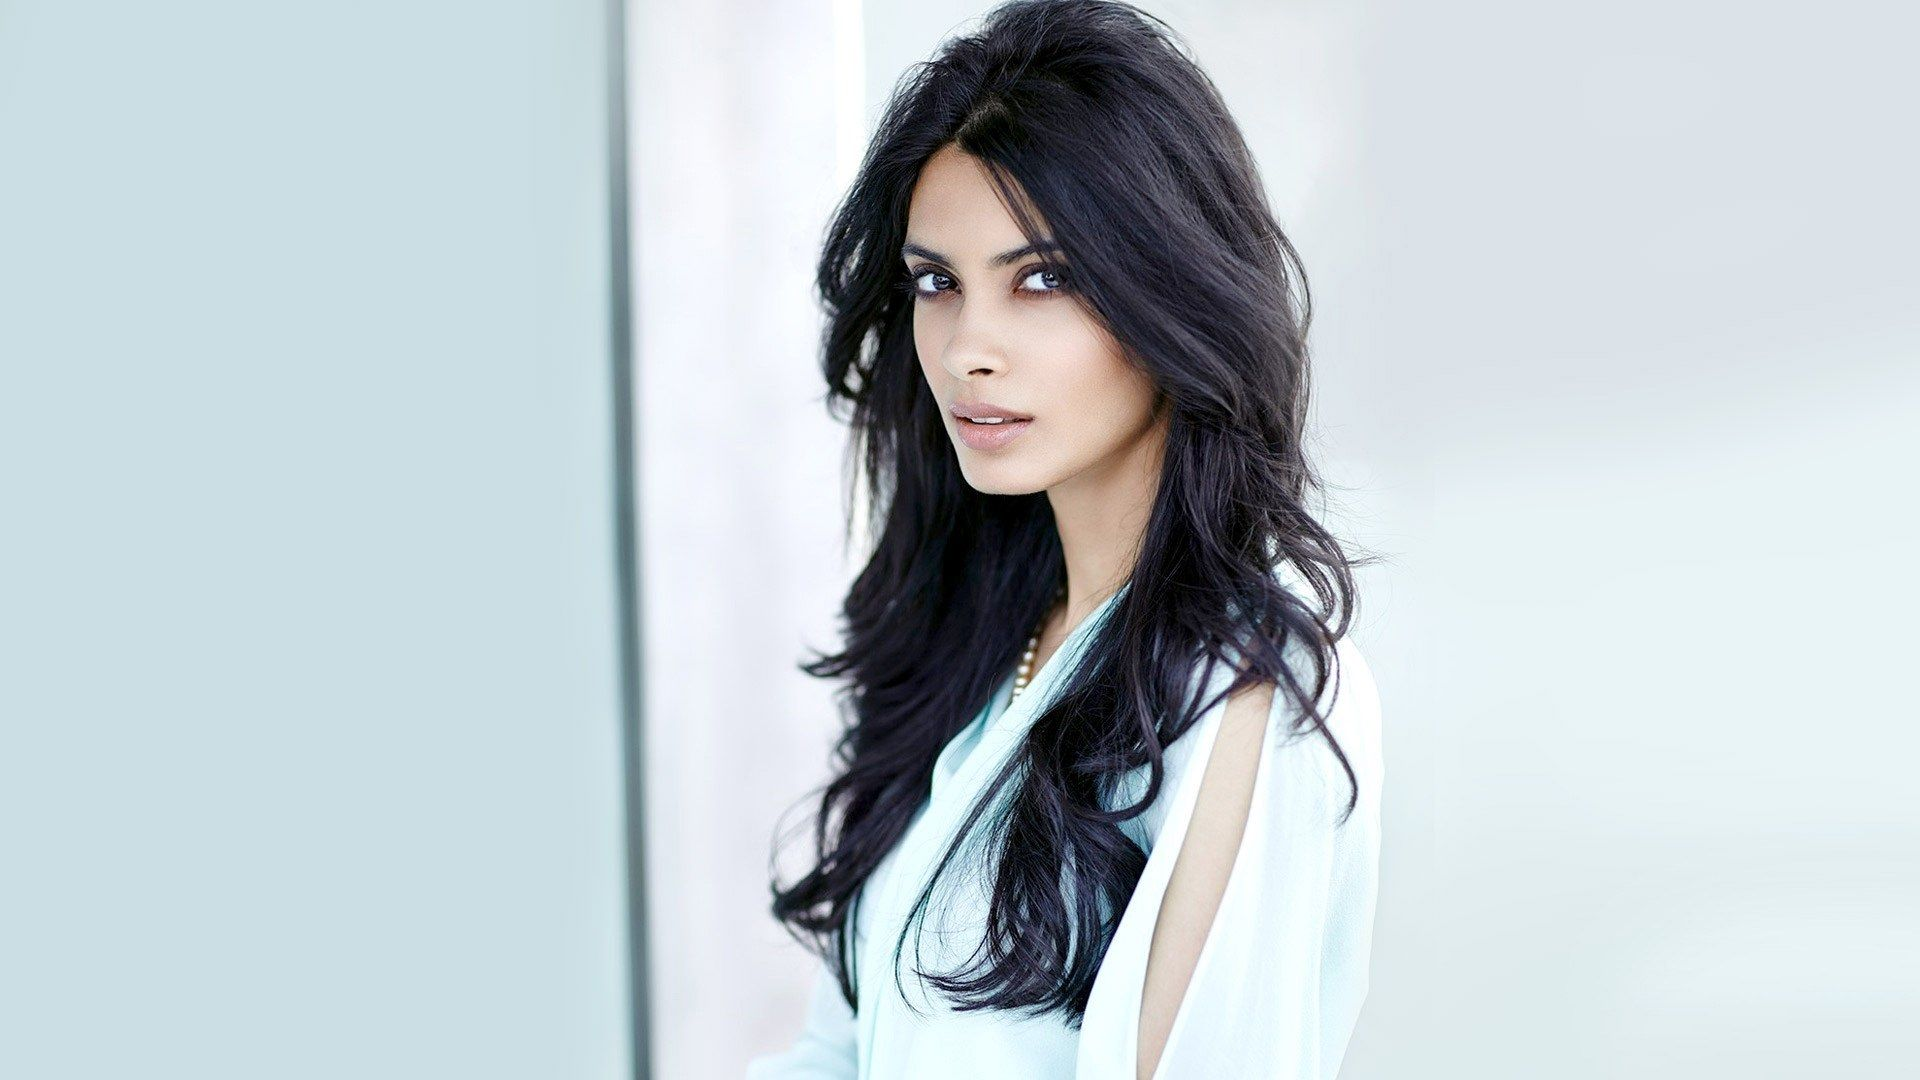 1920x1080 diana penty wallpaper download free for pc hd | wallpapers